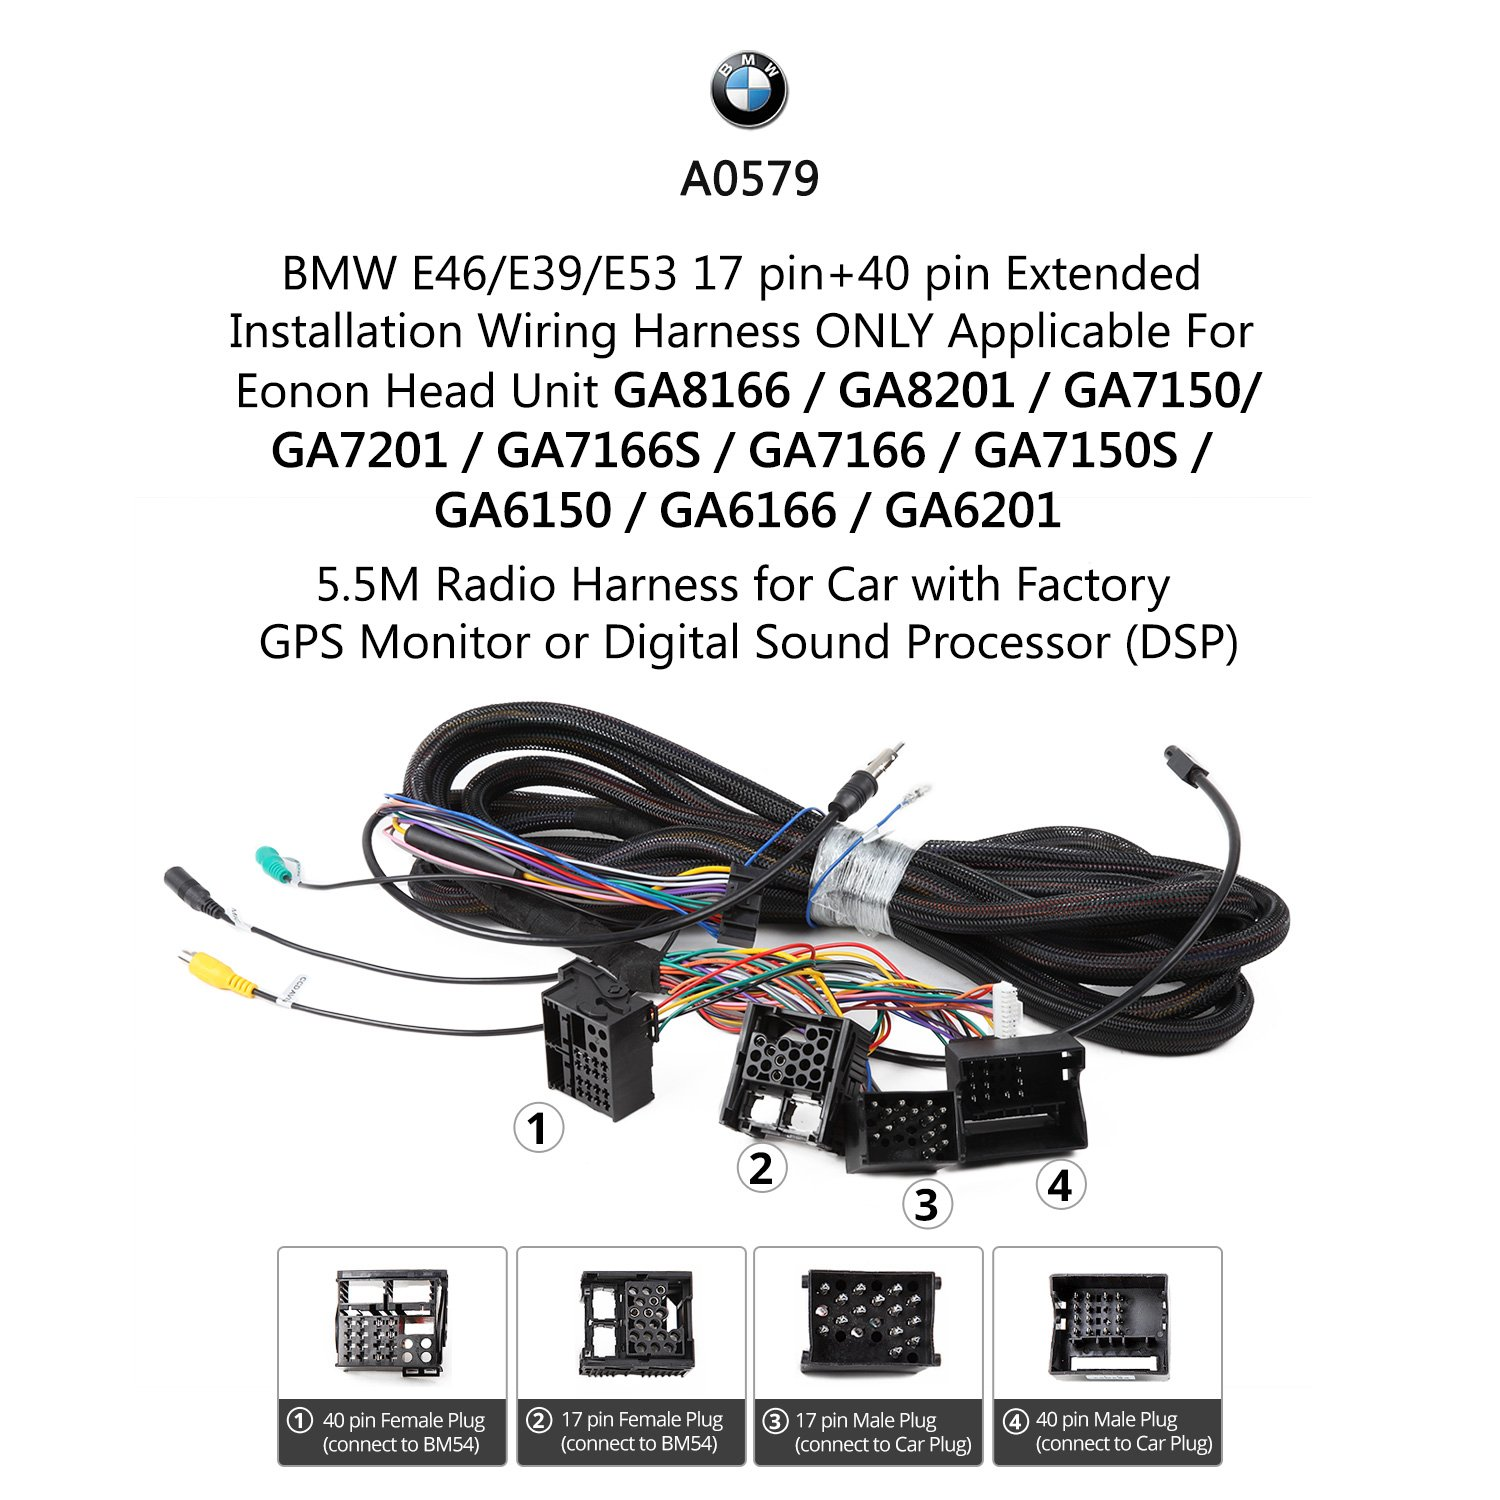 Eonon Installation Wiring Harness Cable 17pin 40pin Only Fit Bmw Car Ga9150kw A0579 Electronics